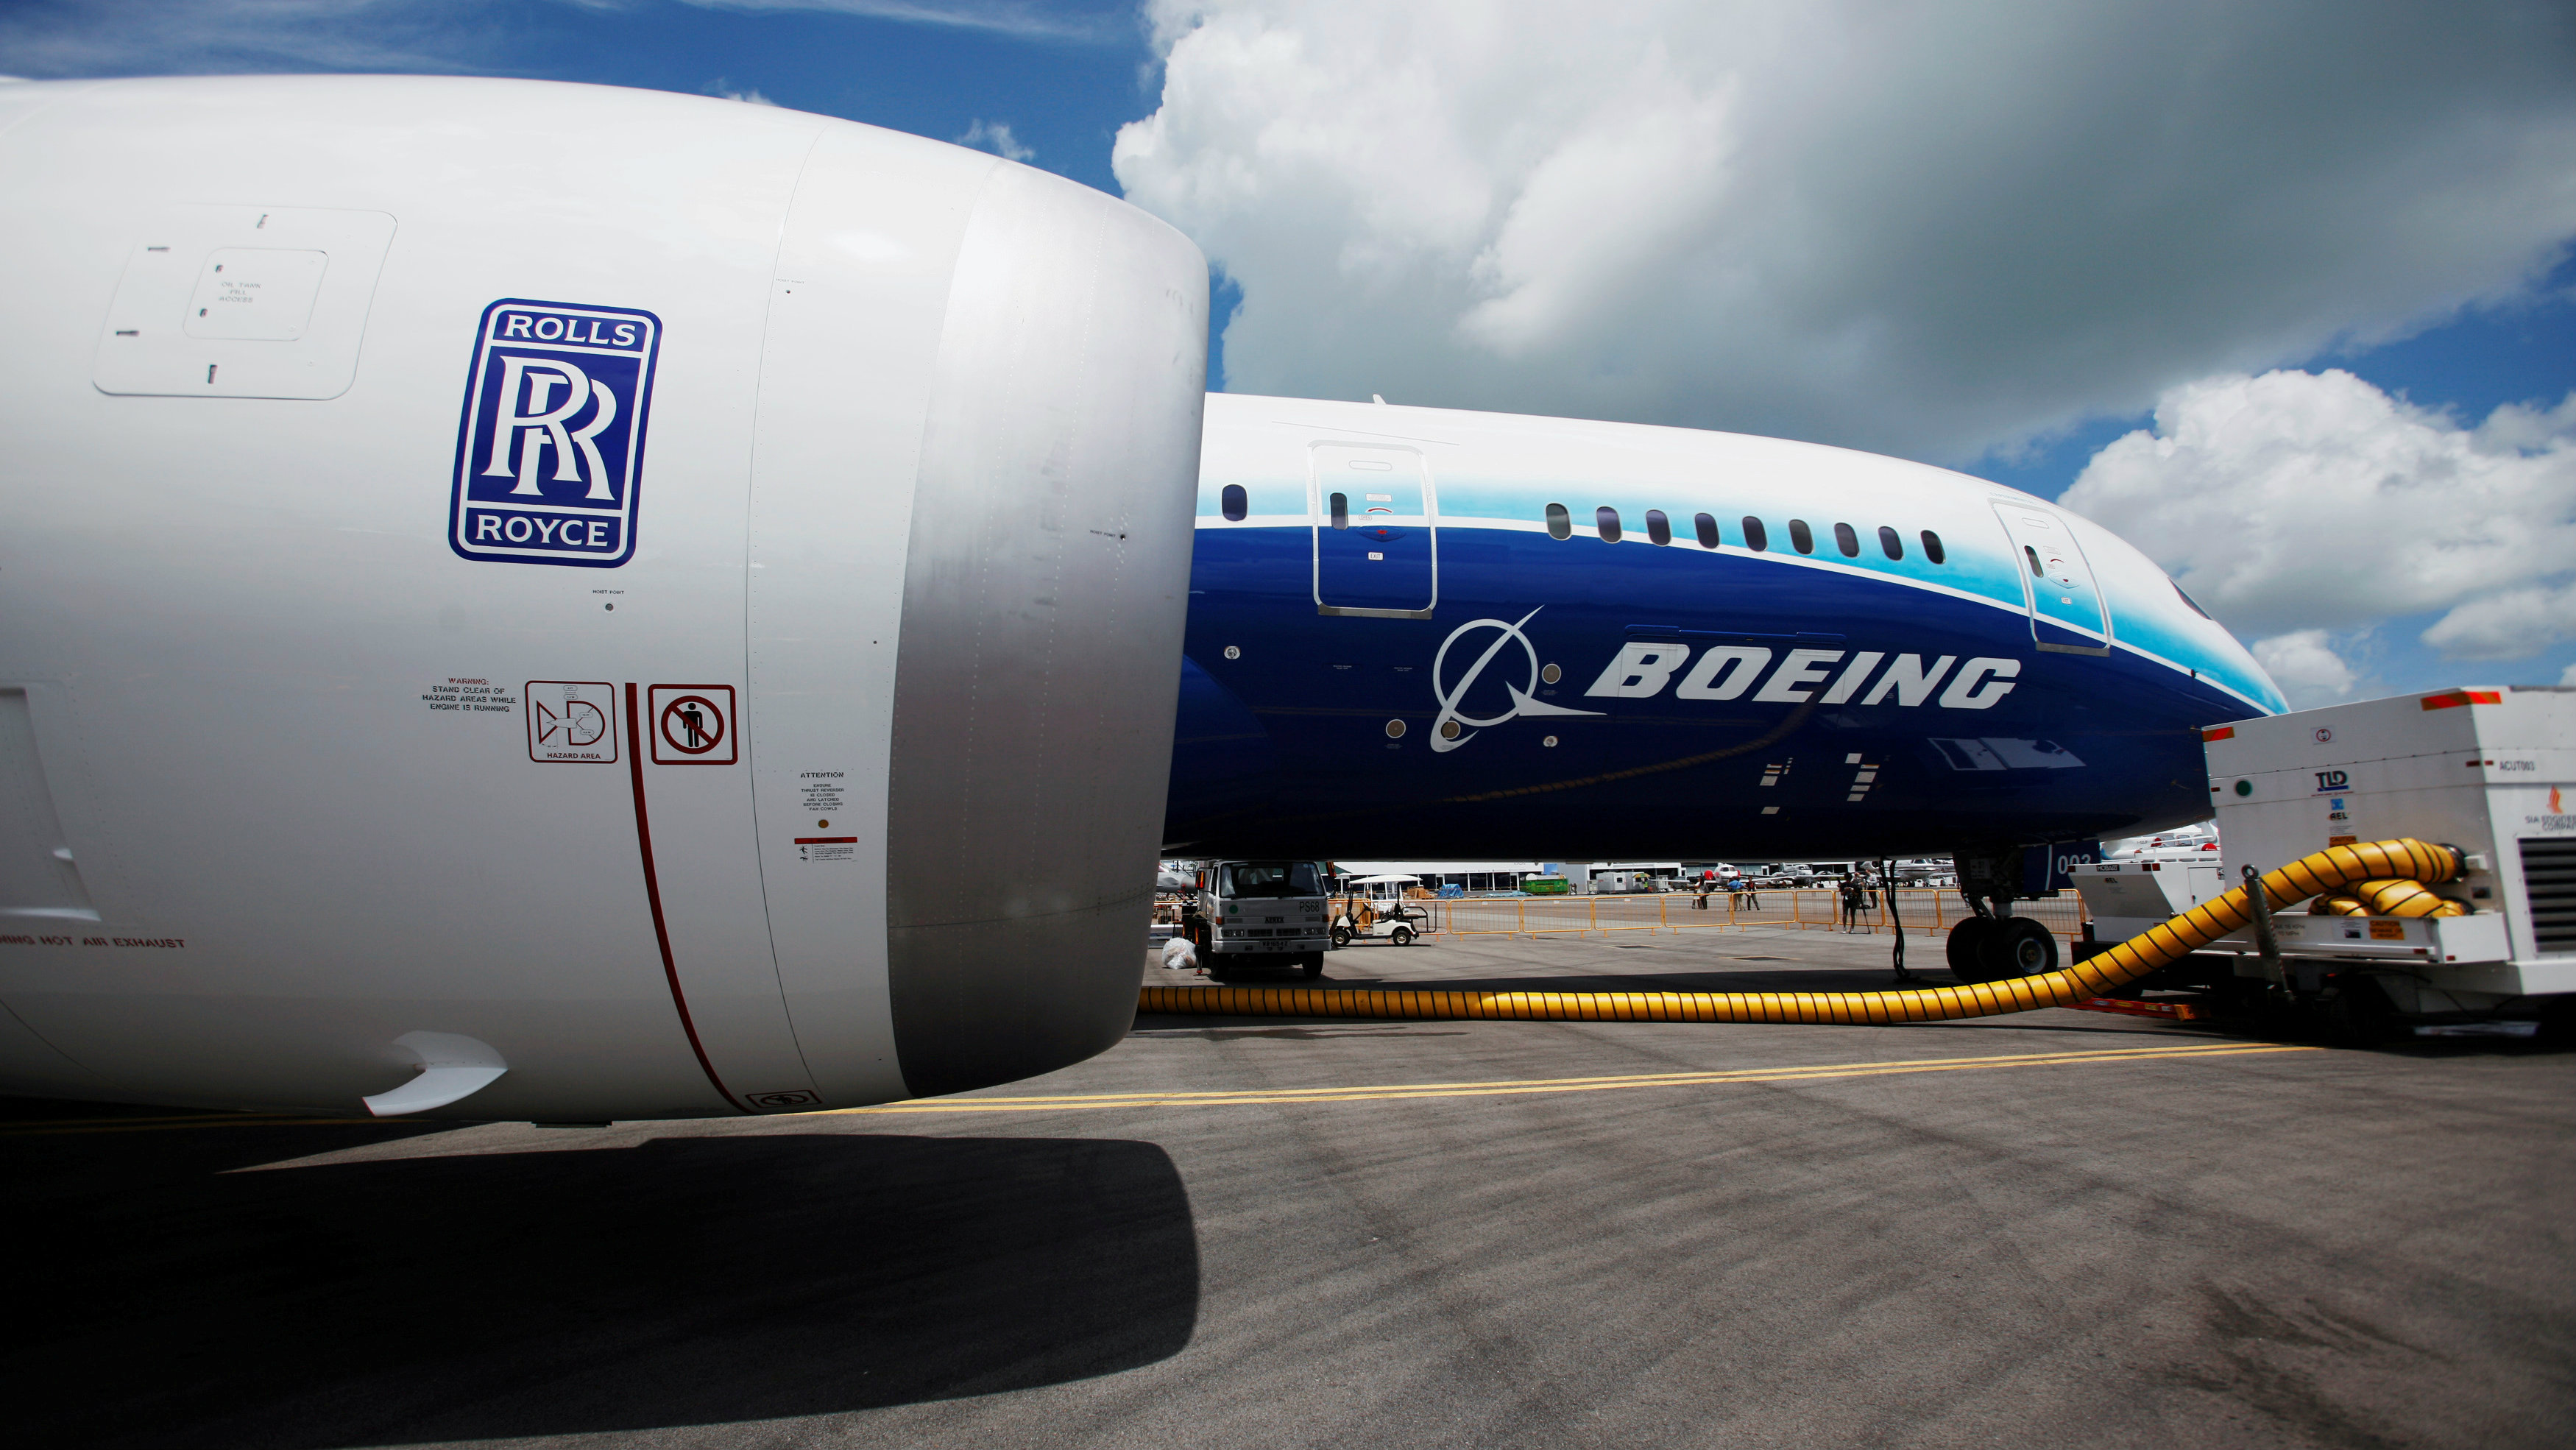 Boeing 787 Dreamliner: How the aircraft's engine problems might